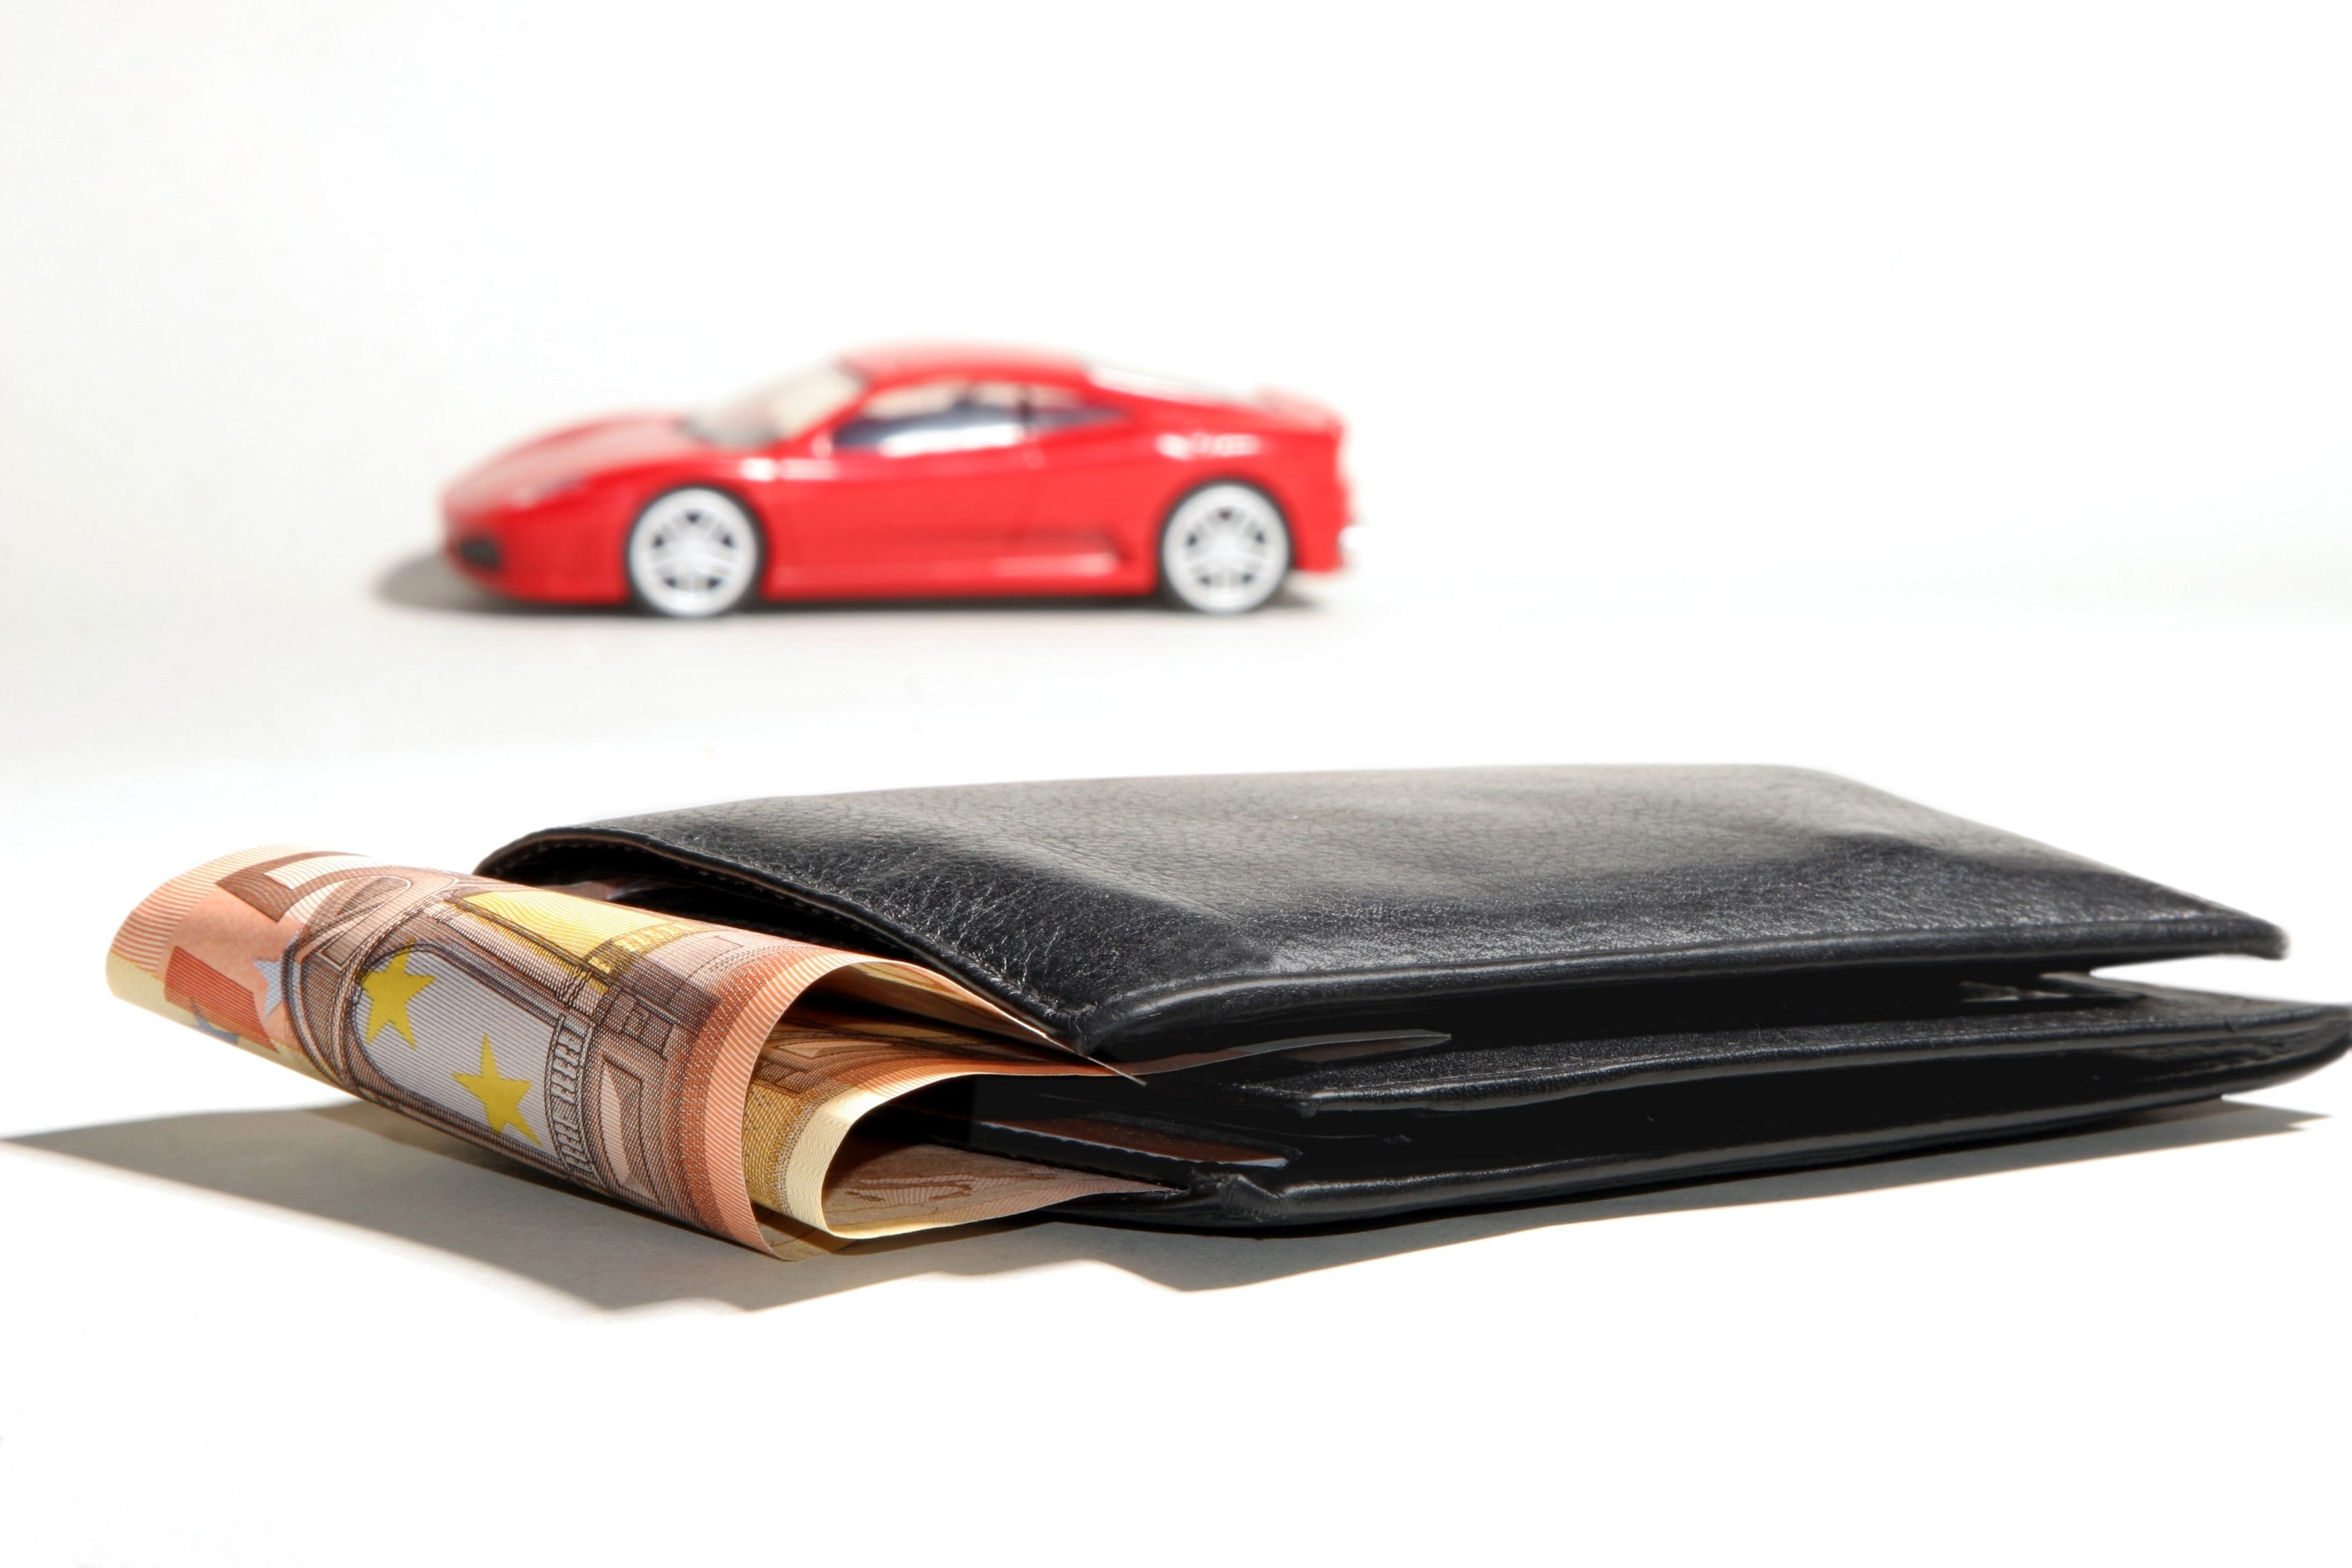 Compare Car Insurance Quotes